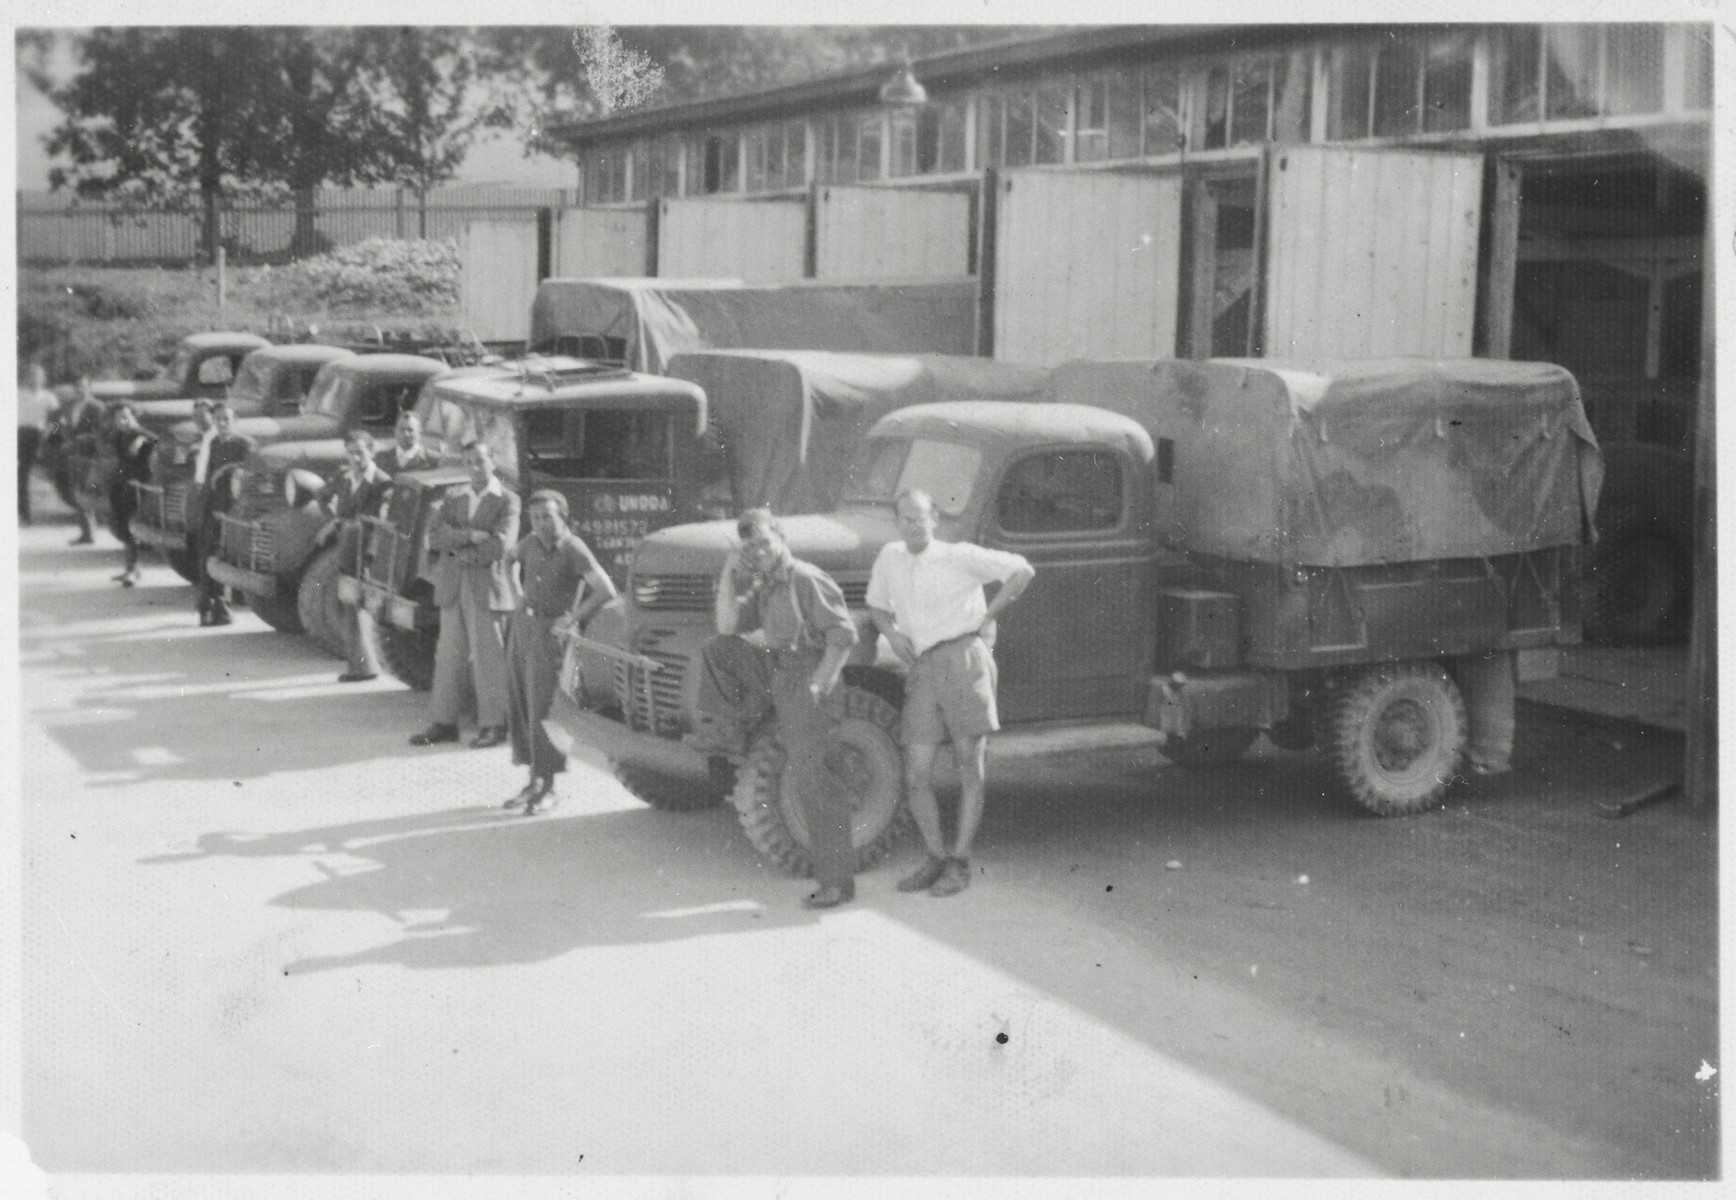 Bricha guides pose next to a row of covered trucks used to transport Jewish refugees from Hungary to Austria and Italy.